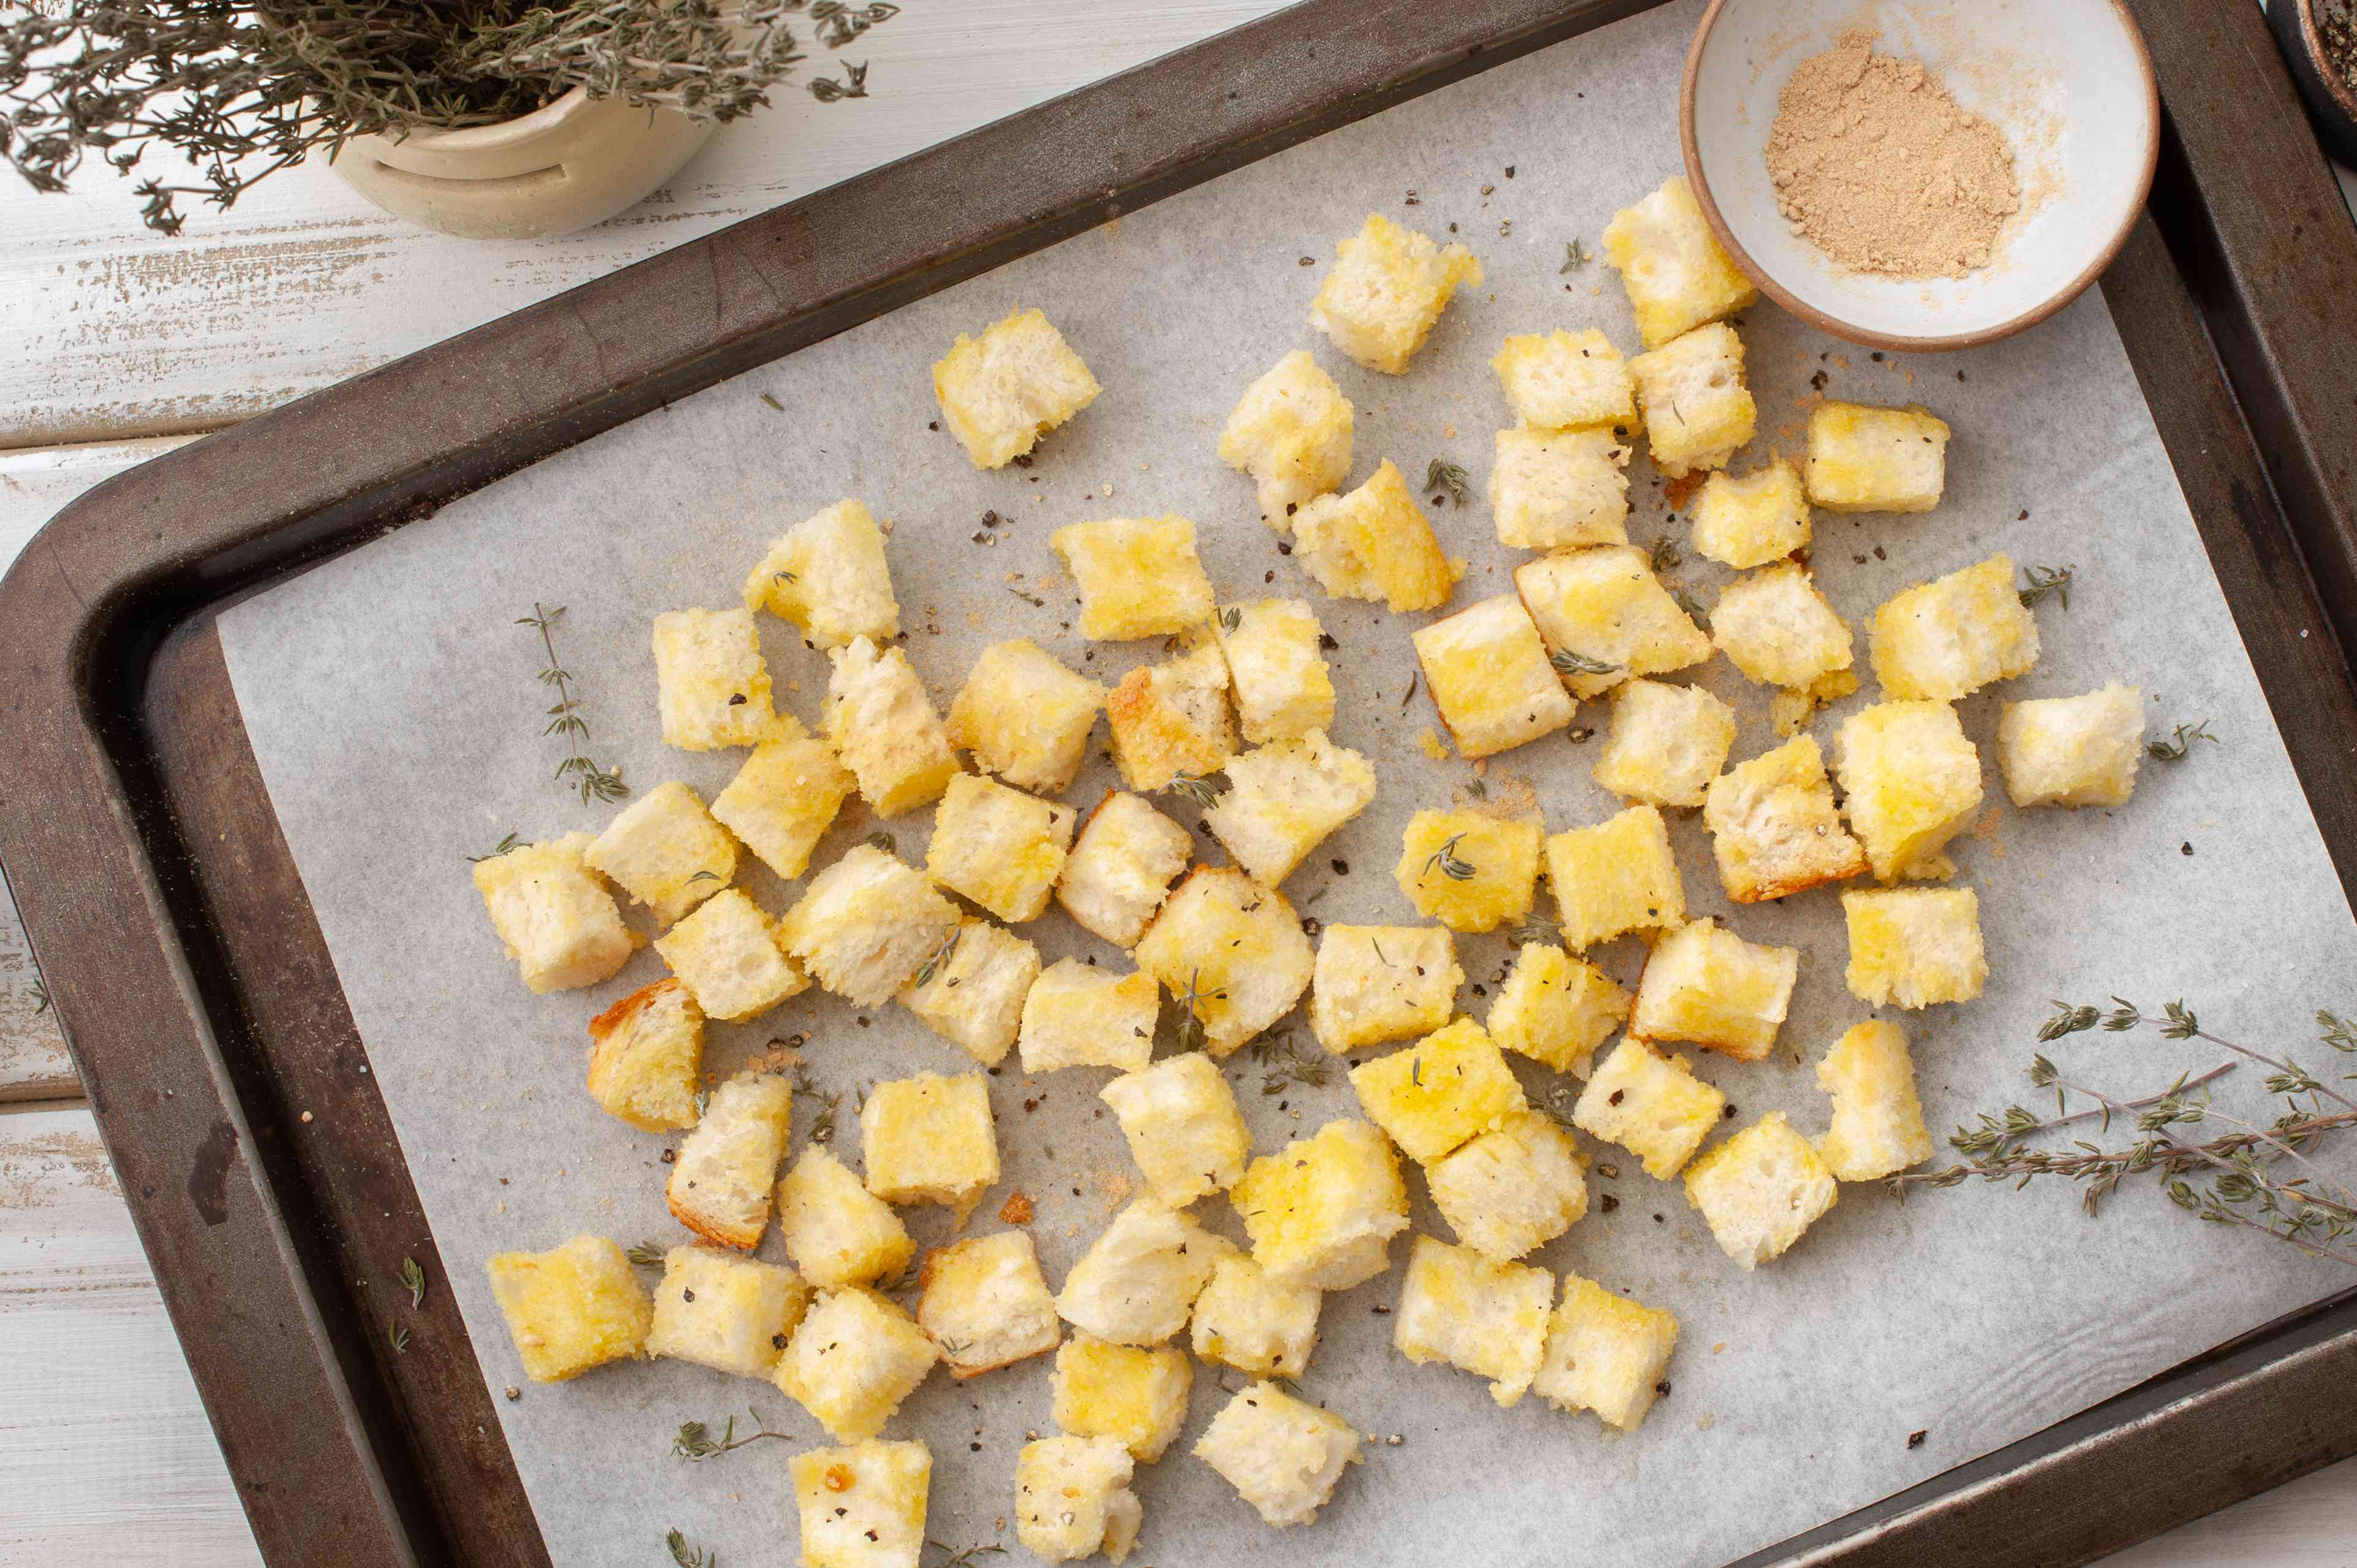 Season croutons with dried herbs on a baking sheet